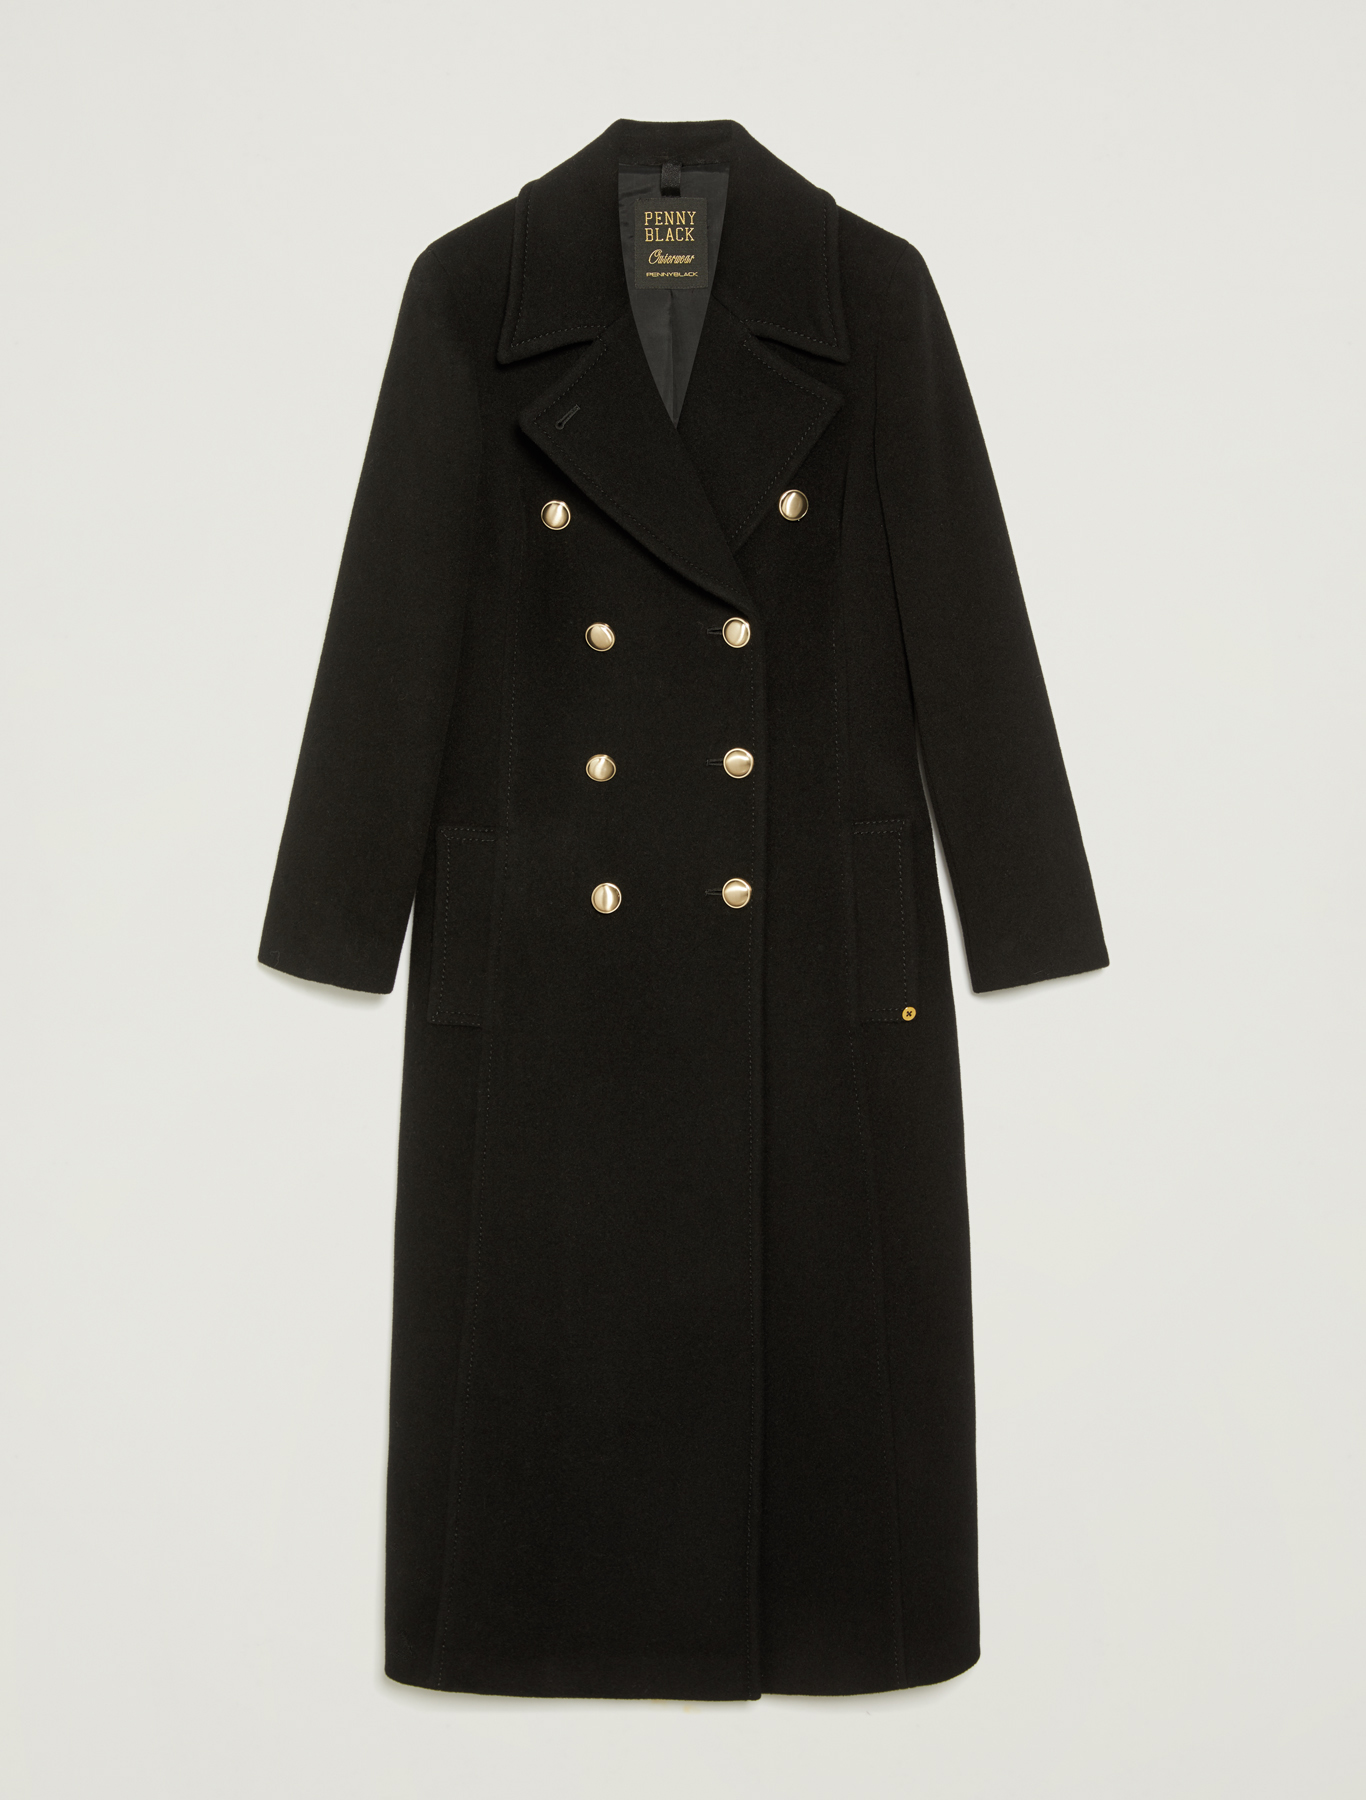 Double-breasted pure wool coat - black - pennyblack